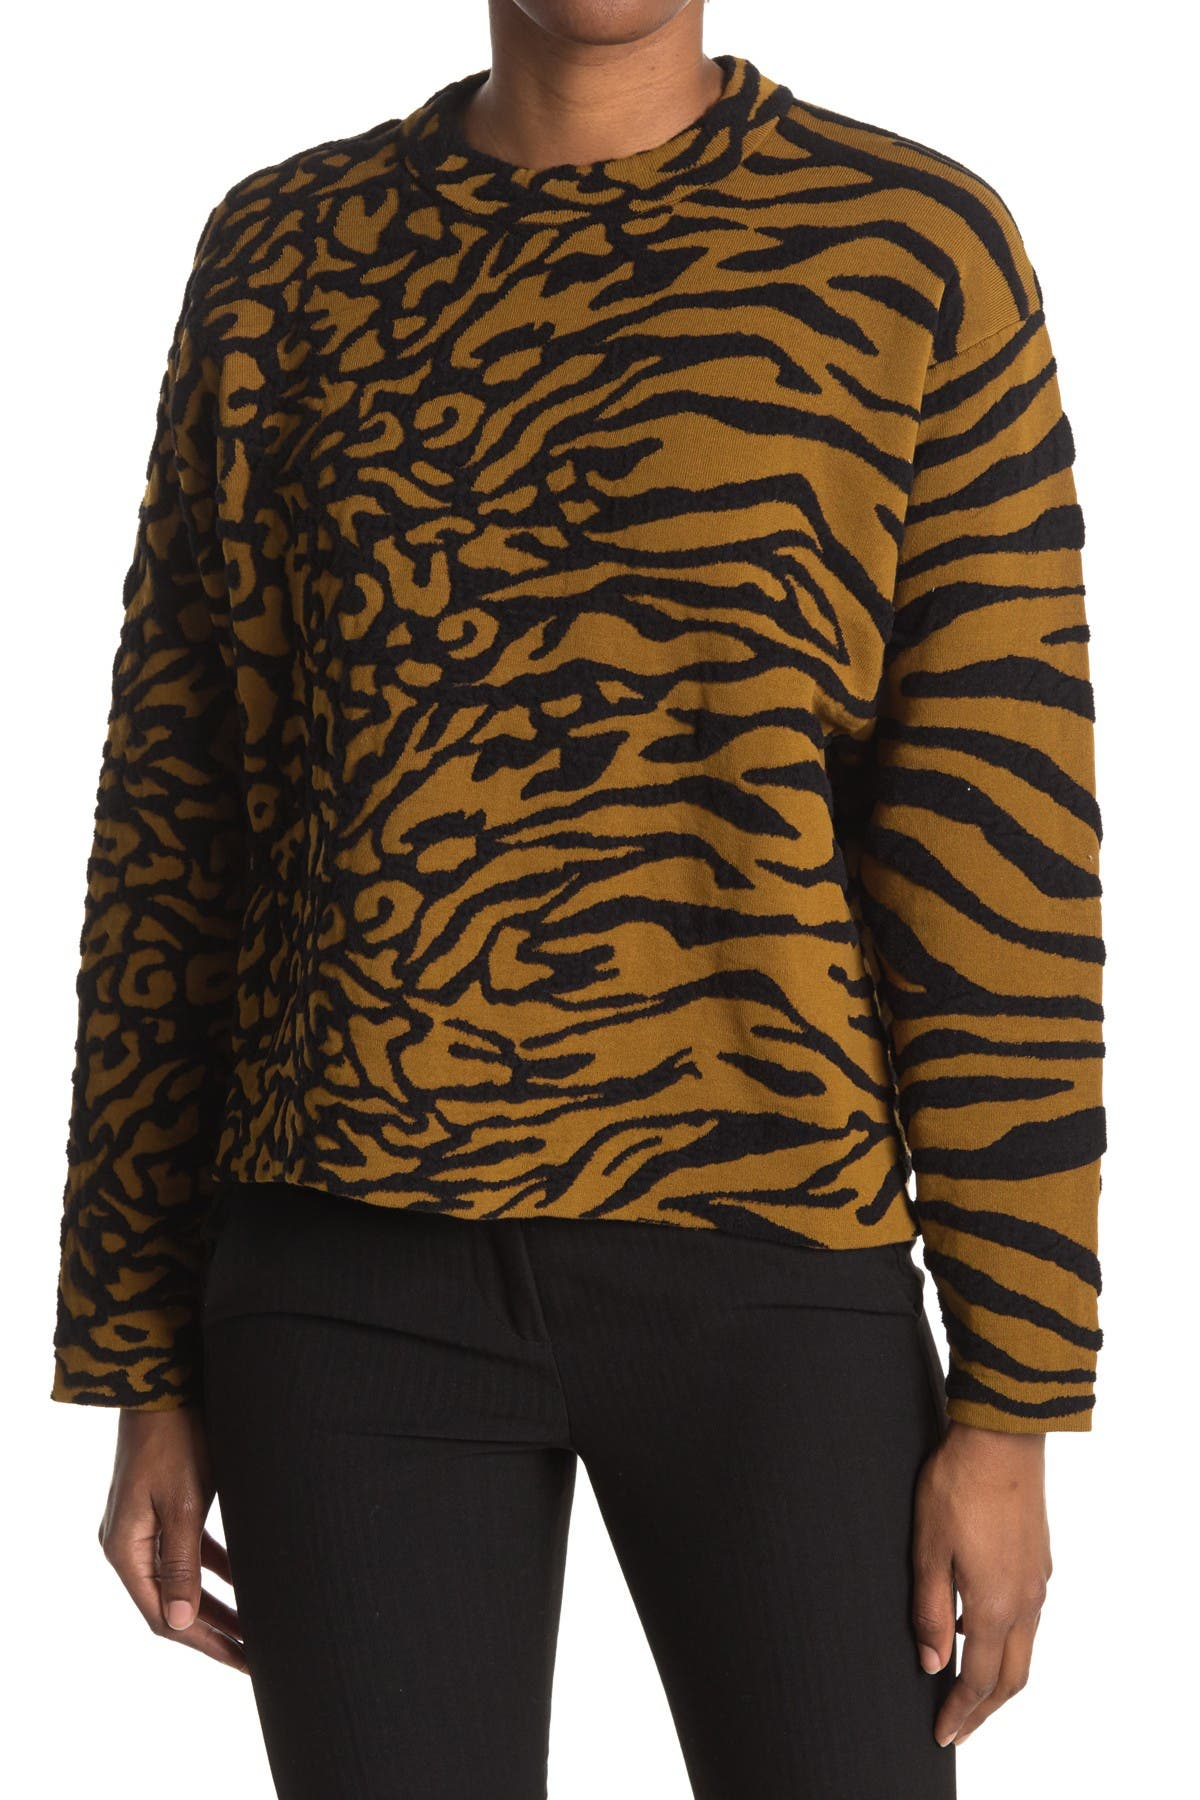 Image of Proenza Schouler Animal Pattern Crop Pullover Sweater